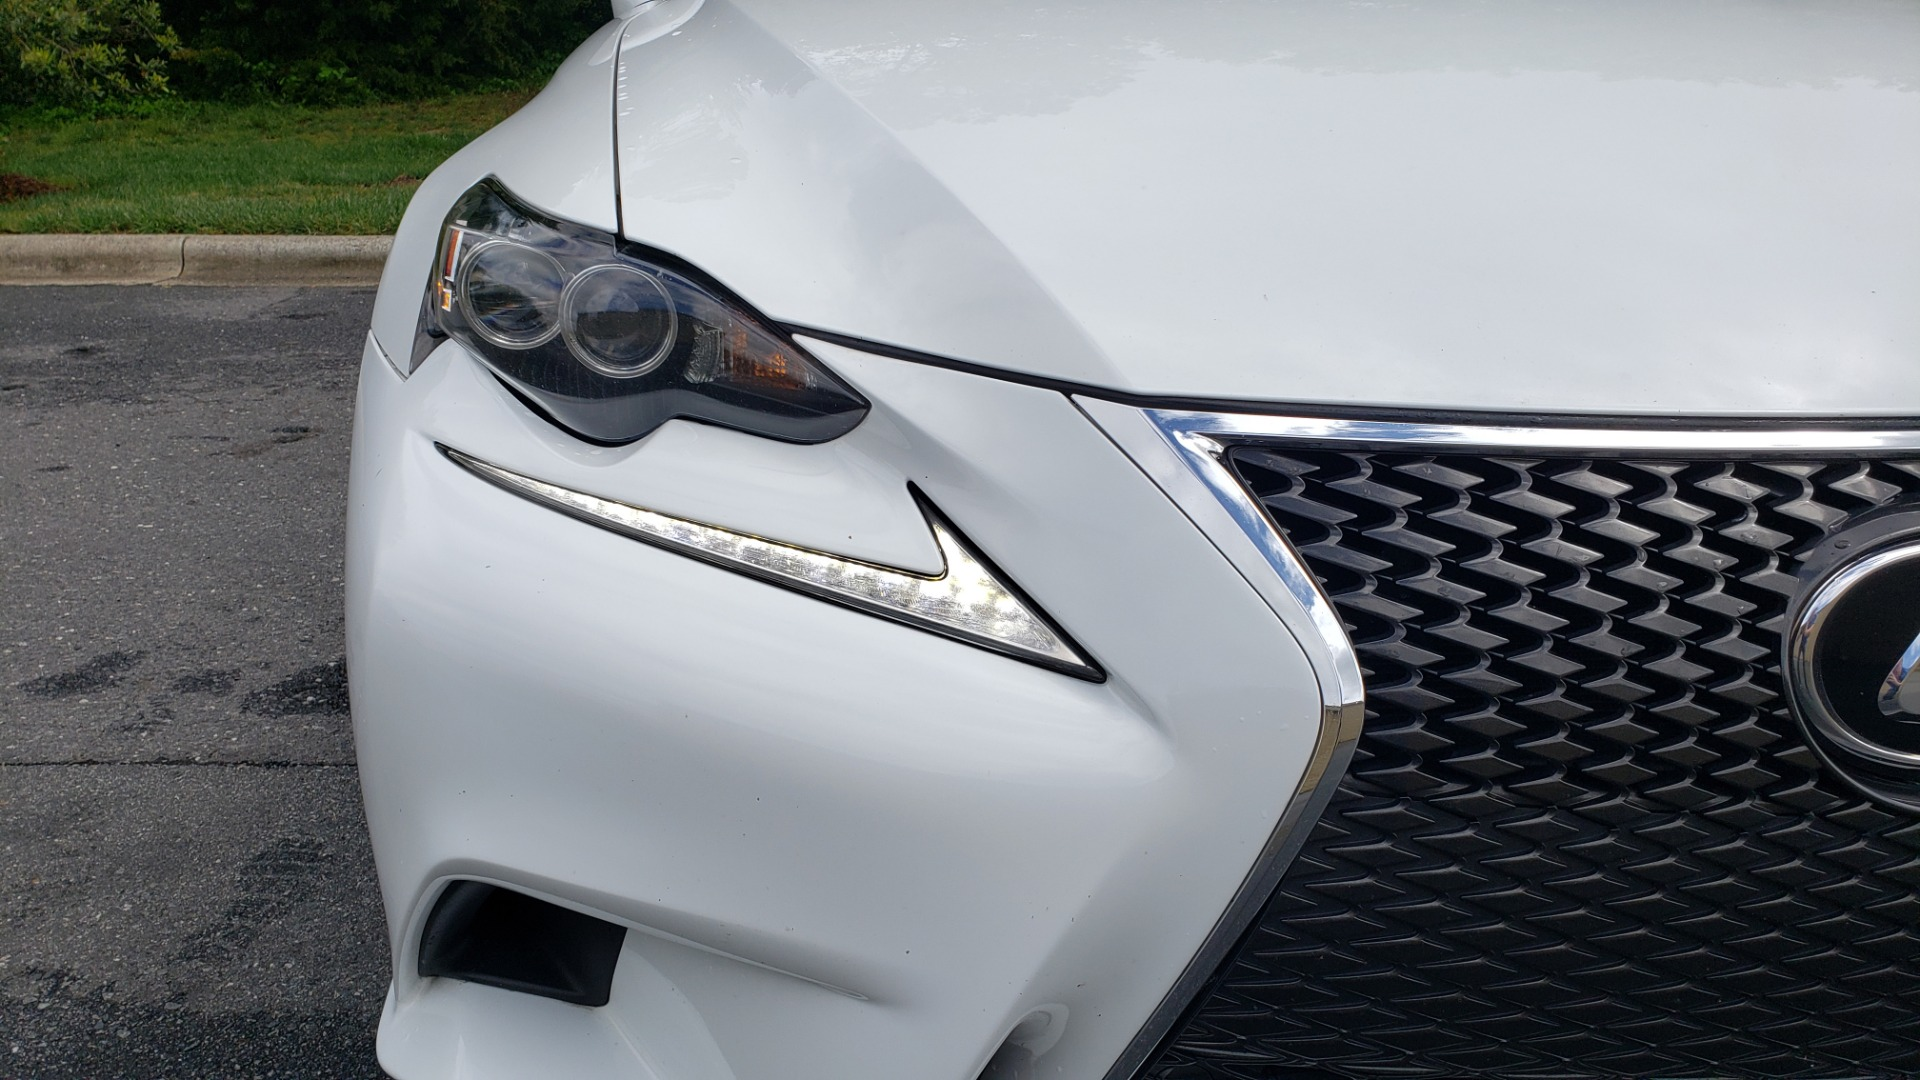 Used 2014 Lexus IS 350 F-SPORT / NAV / SUNROOF / REARVIEW / BSM / MARK LEV SND for sale Sold at Formula Imports in Charlotte NC 28227 19